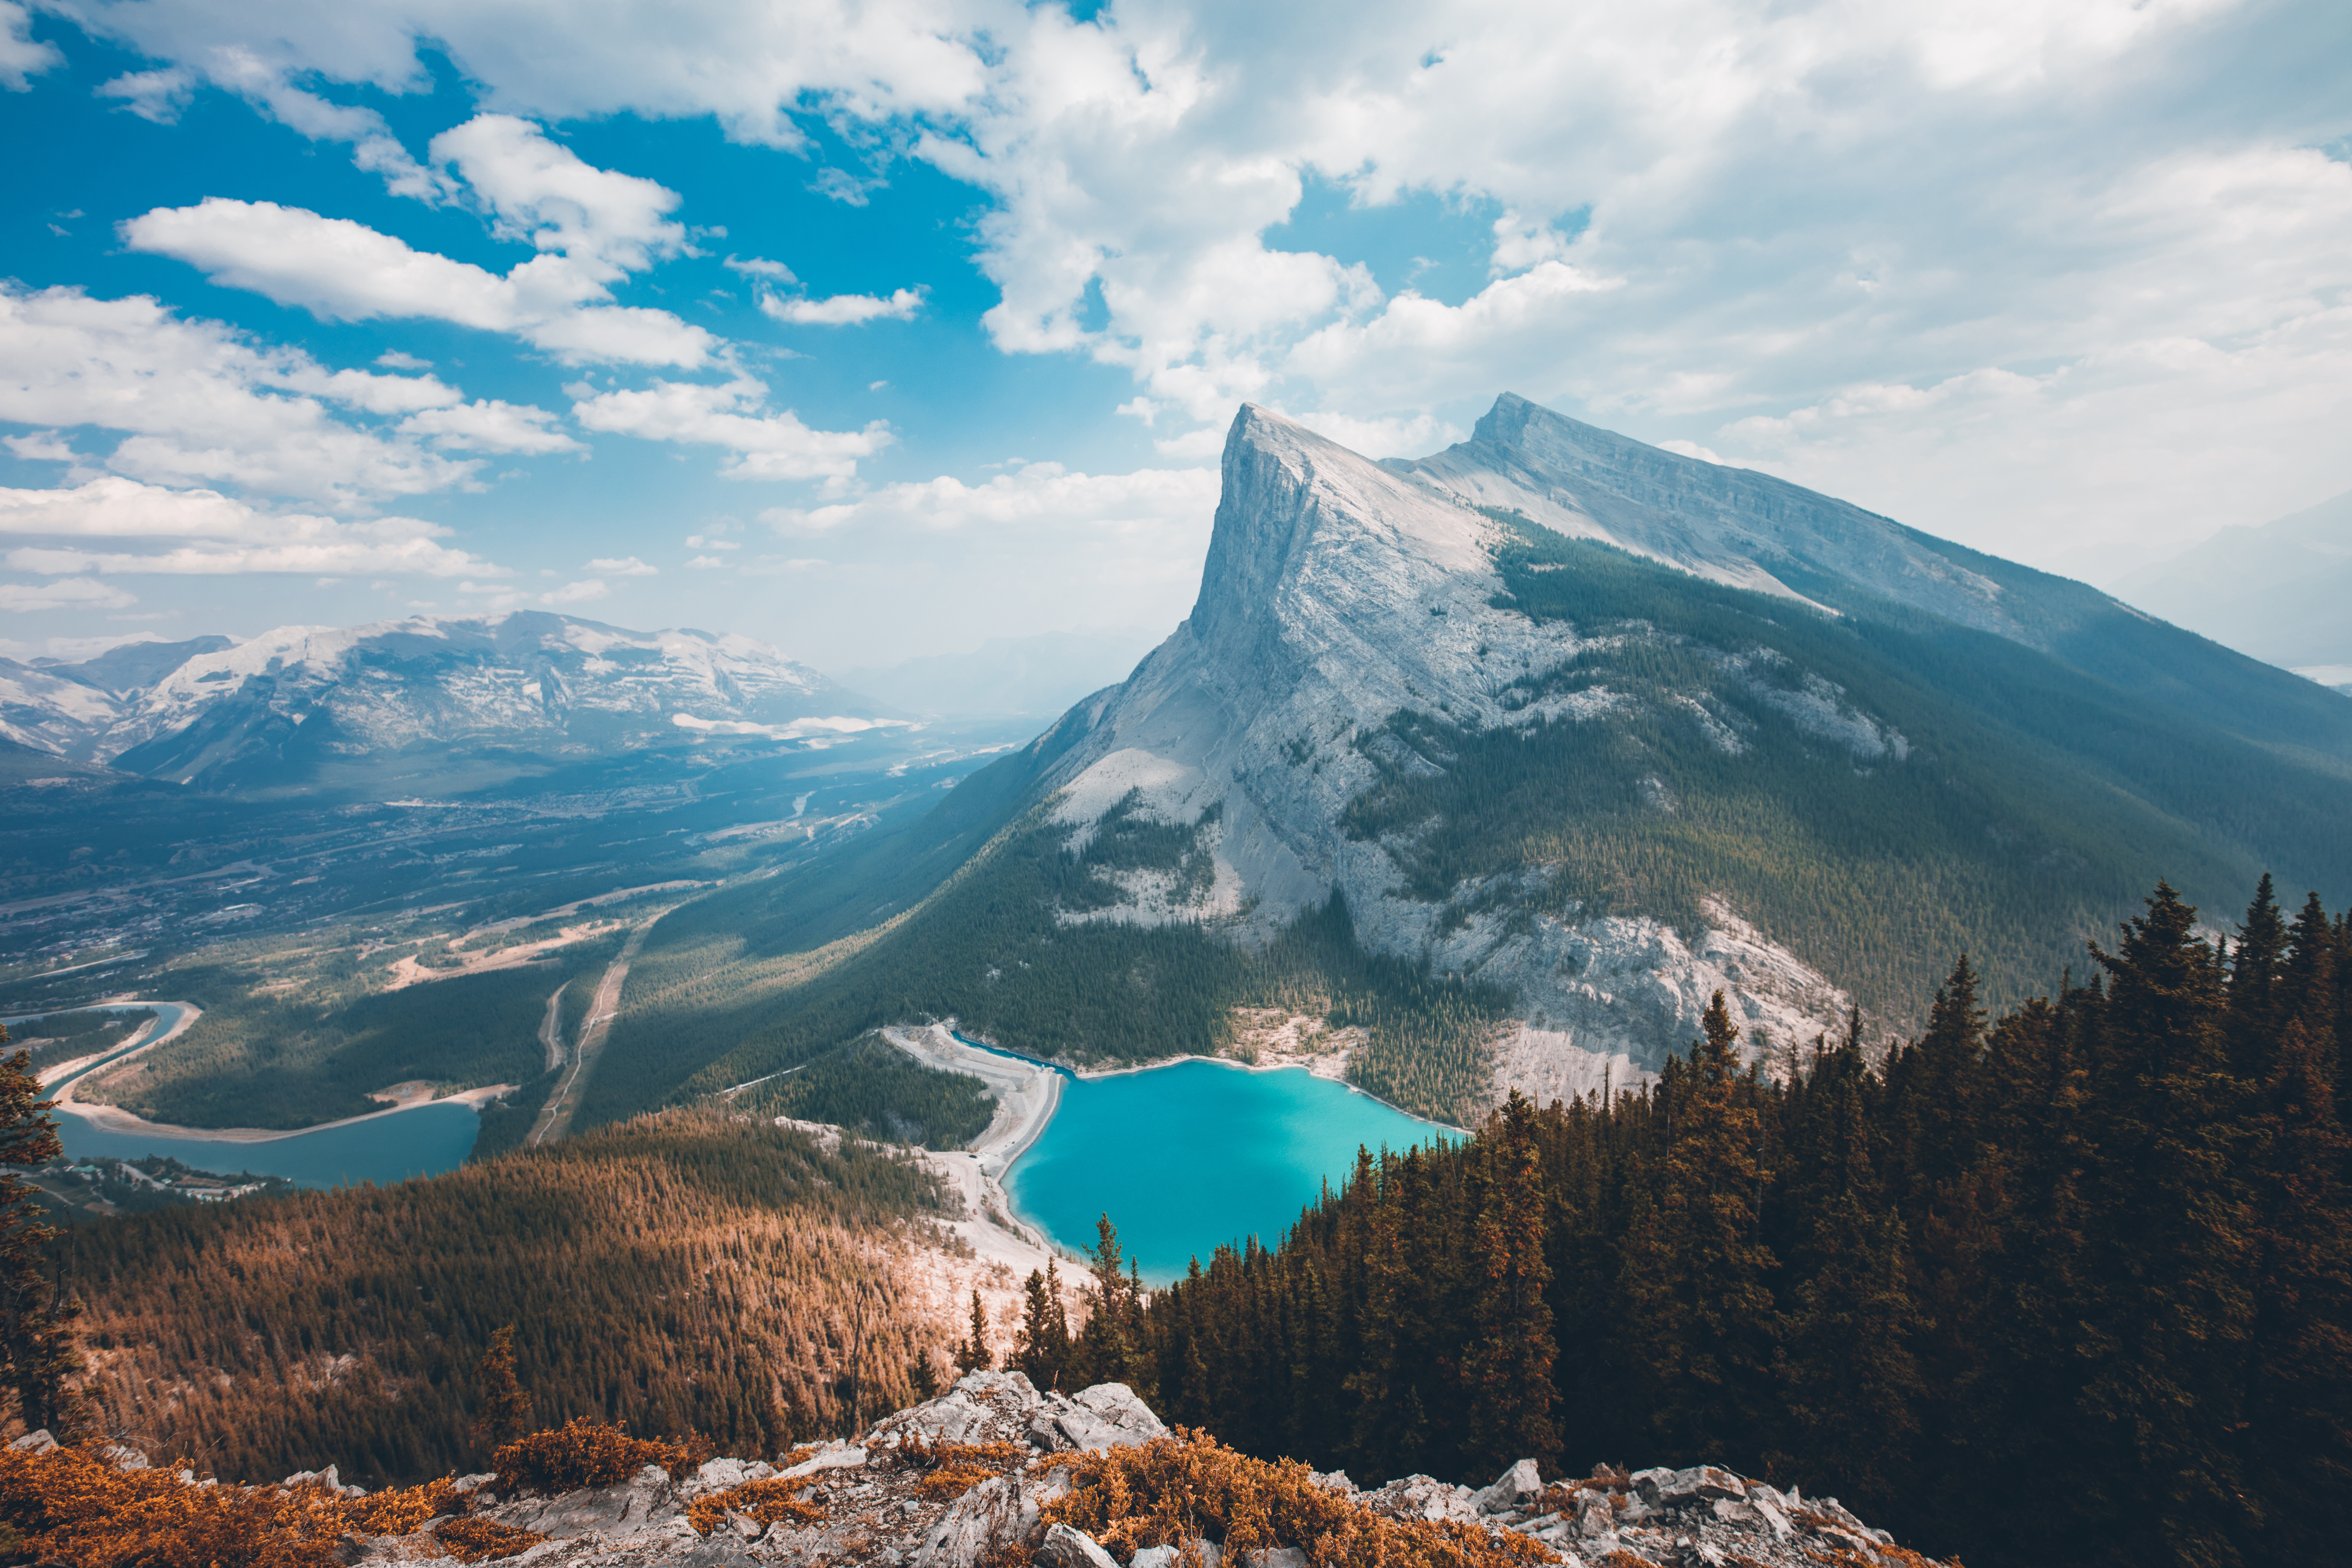 6720x4480 Breathtaking View From The East End Of Rundle Canmore Alberta C By Brendan Bannister R EarthPorn